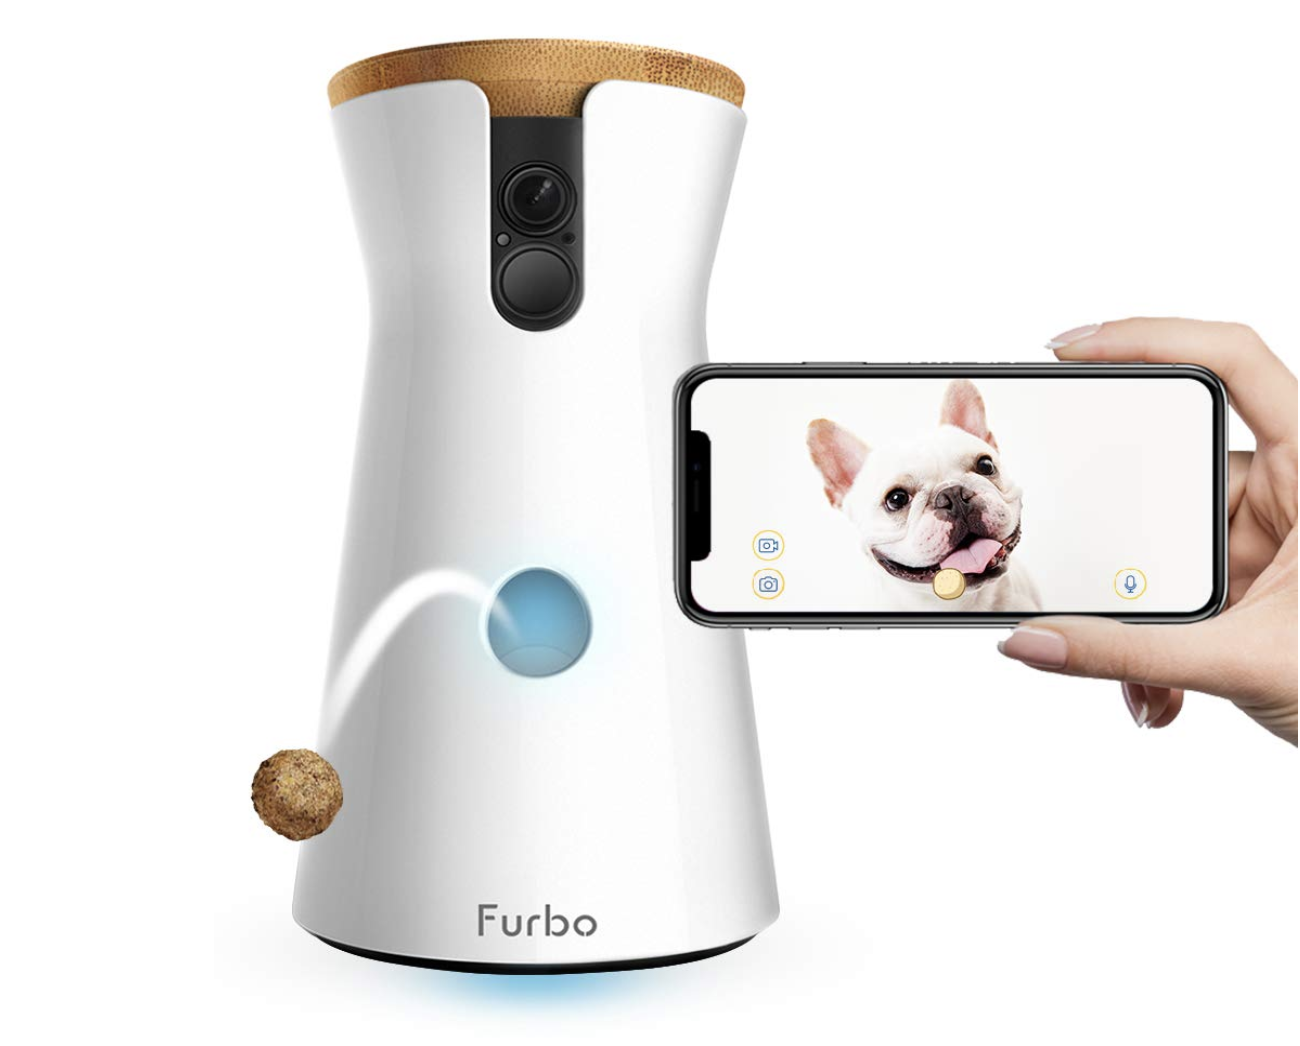 Furbo Dog Camera: Treat Tossing, Full HD Wifi Pet Camera With 2-Way Audio - $134.99 (Down From $199.00)